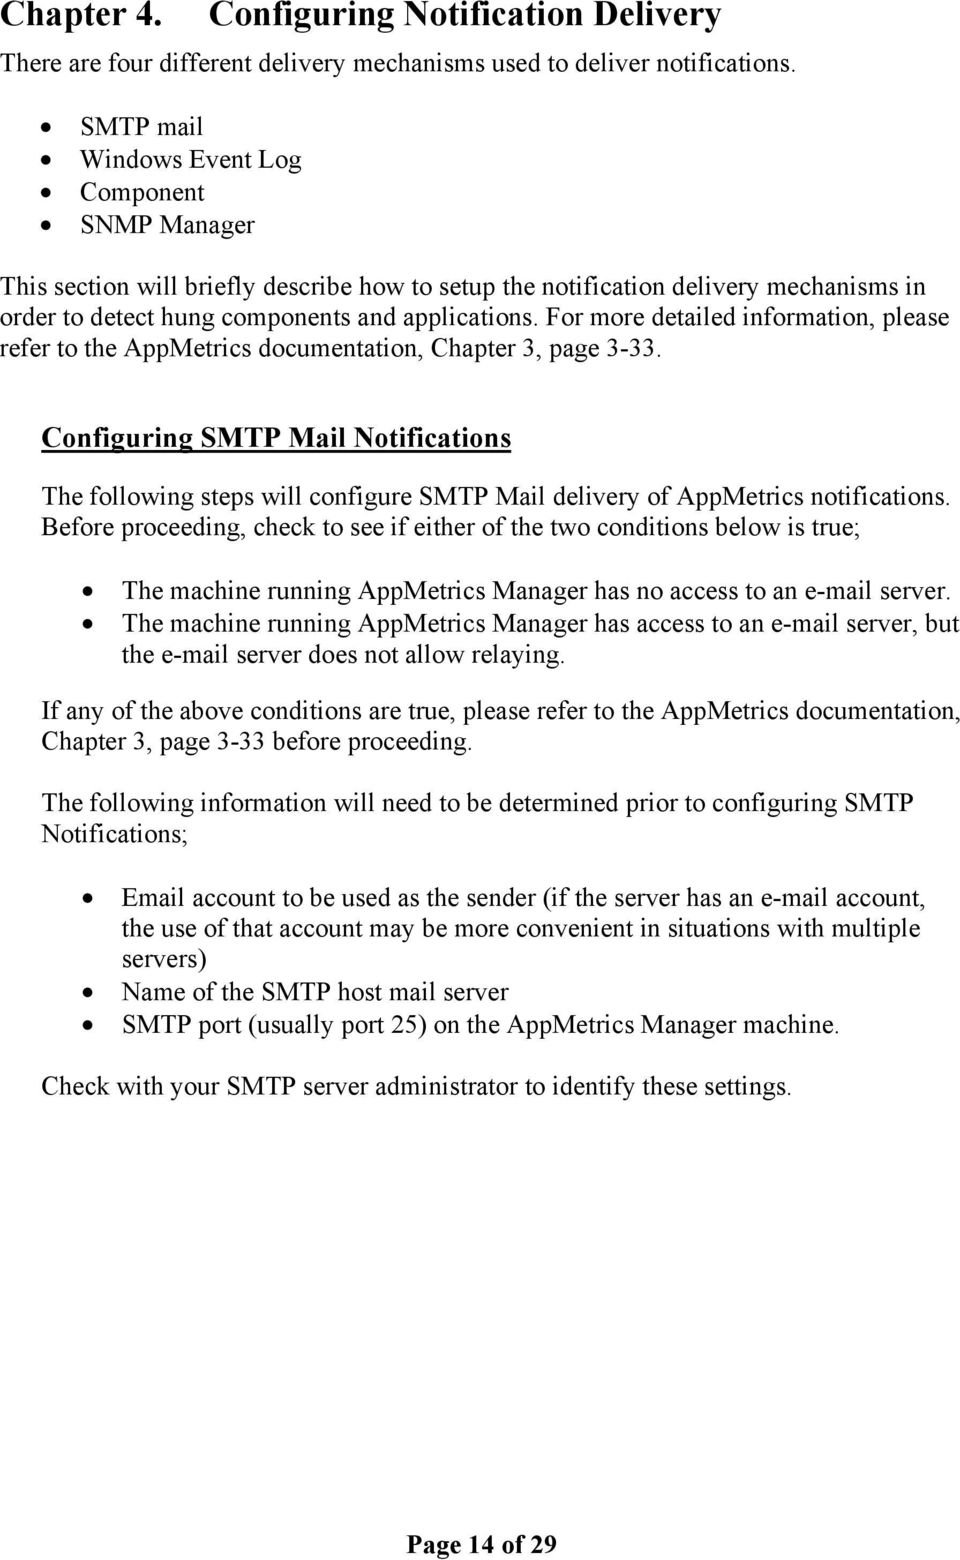 For more detailed information, please refer to the AppMetrics documentation, Chapter 3, page 3-33.